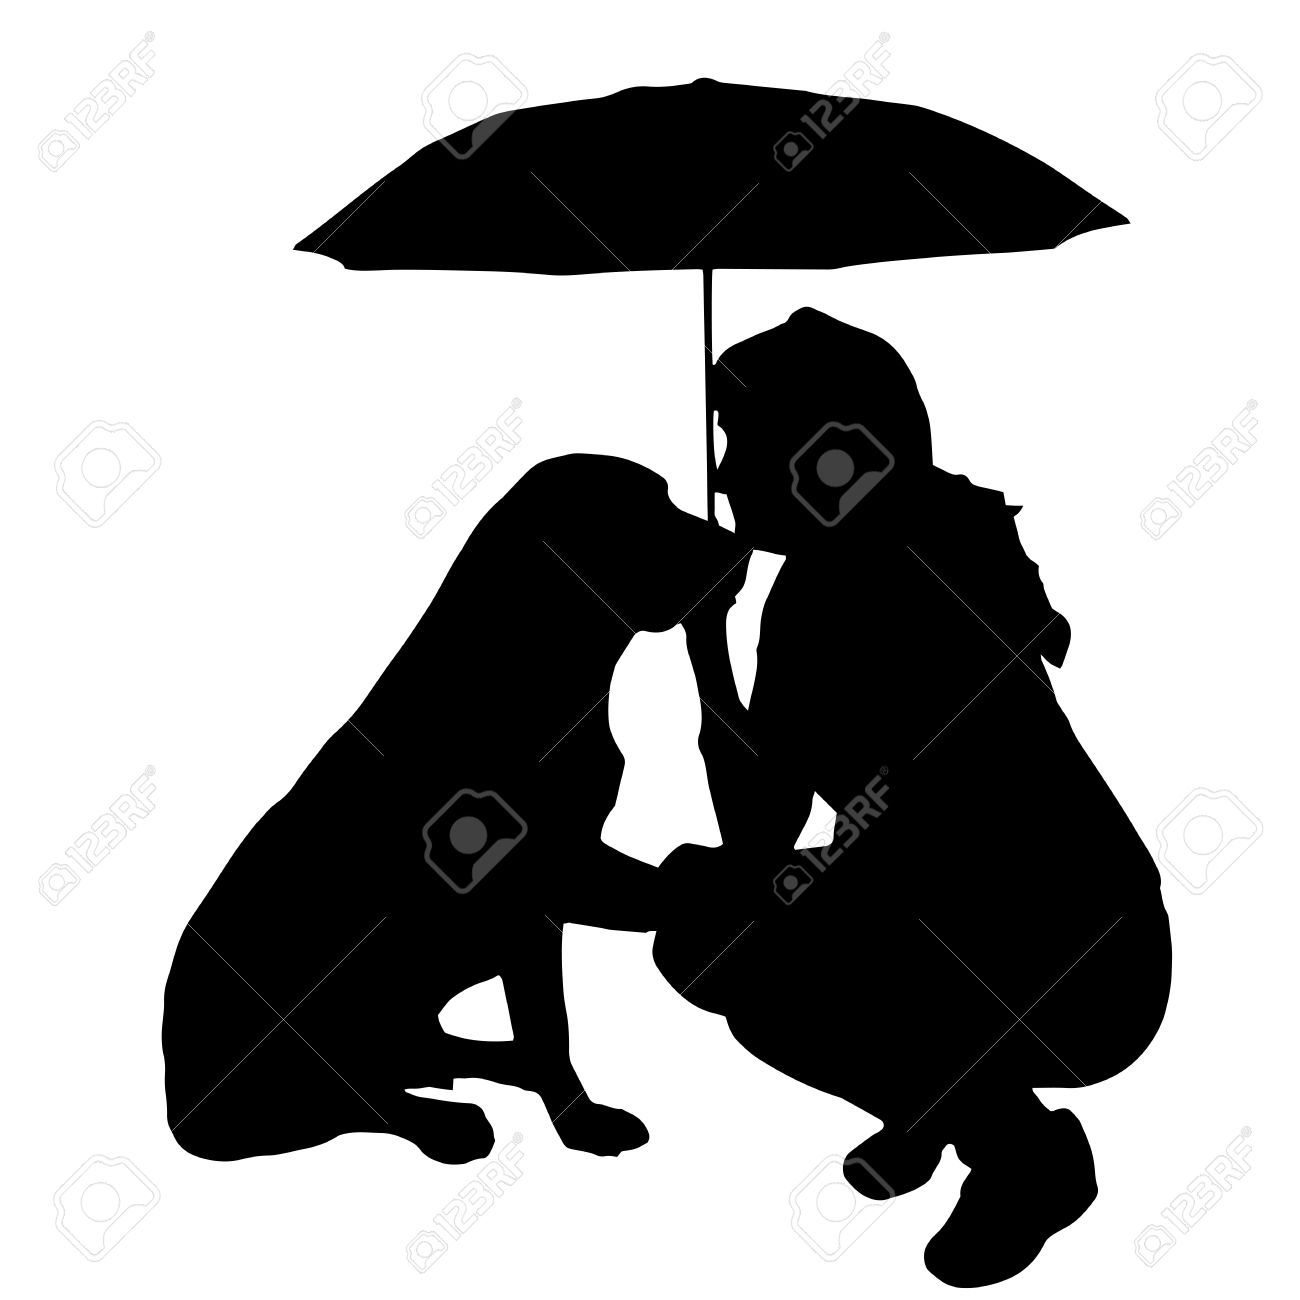 1300x1300 Umbrella Active Stock Photos Images, Royalty Free Umbrella Active